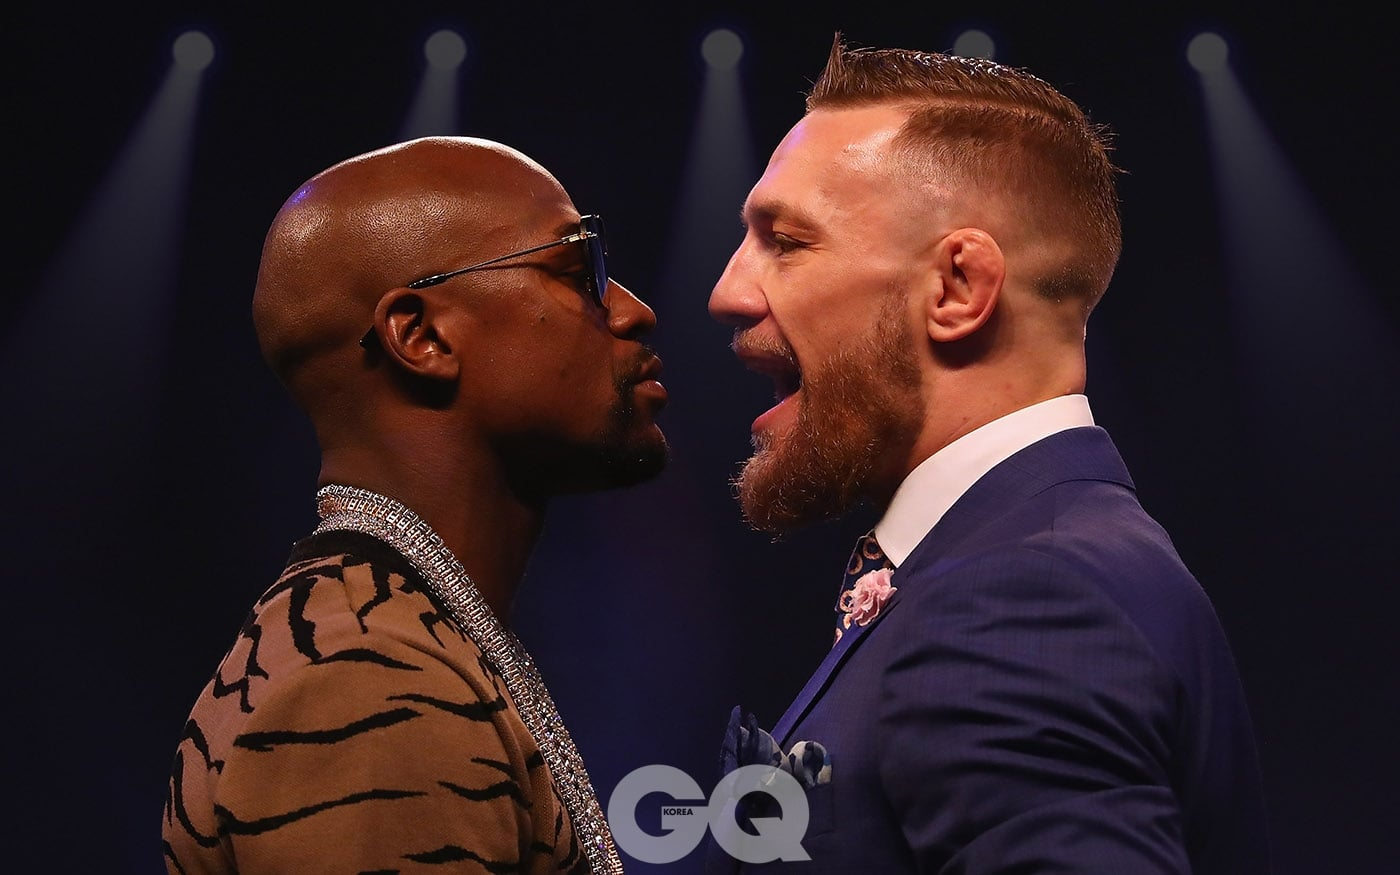 LONDON, ENGLAND - JULY 14:  Floyd Mayweather Jr. and Conor McGregor come face to face during the Floyd Mayweather Jr. v Conor McGregor World Press Tour at SSE Arena on July 14, 2017 in London, England.  (Photo by Matthew Lewis/Getty Images)